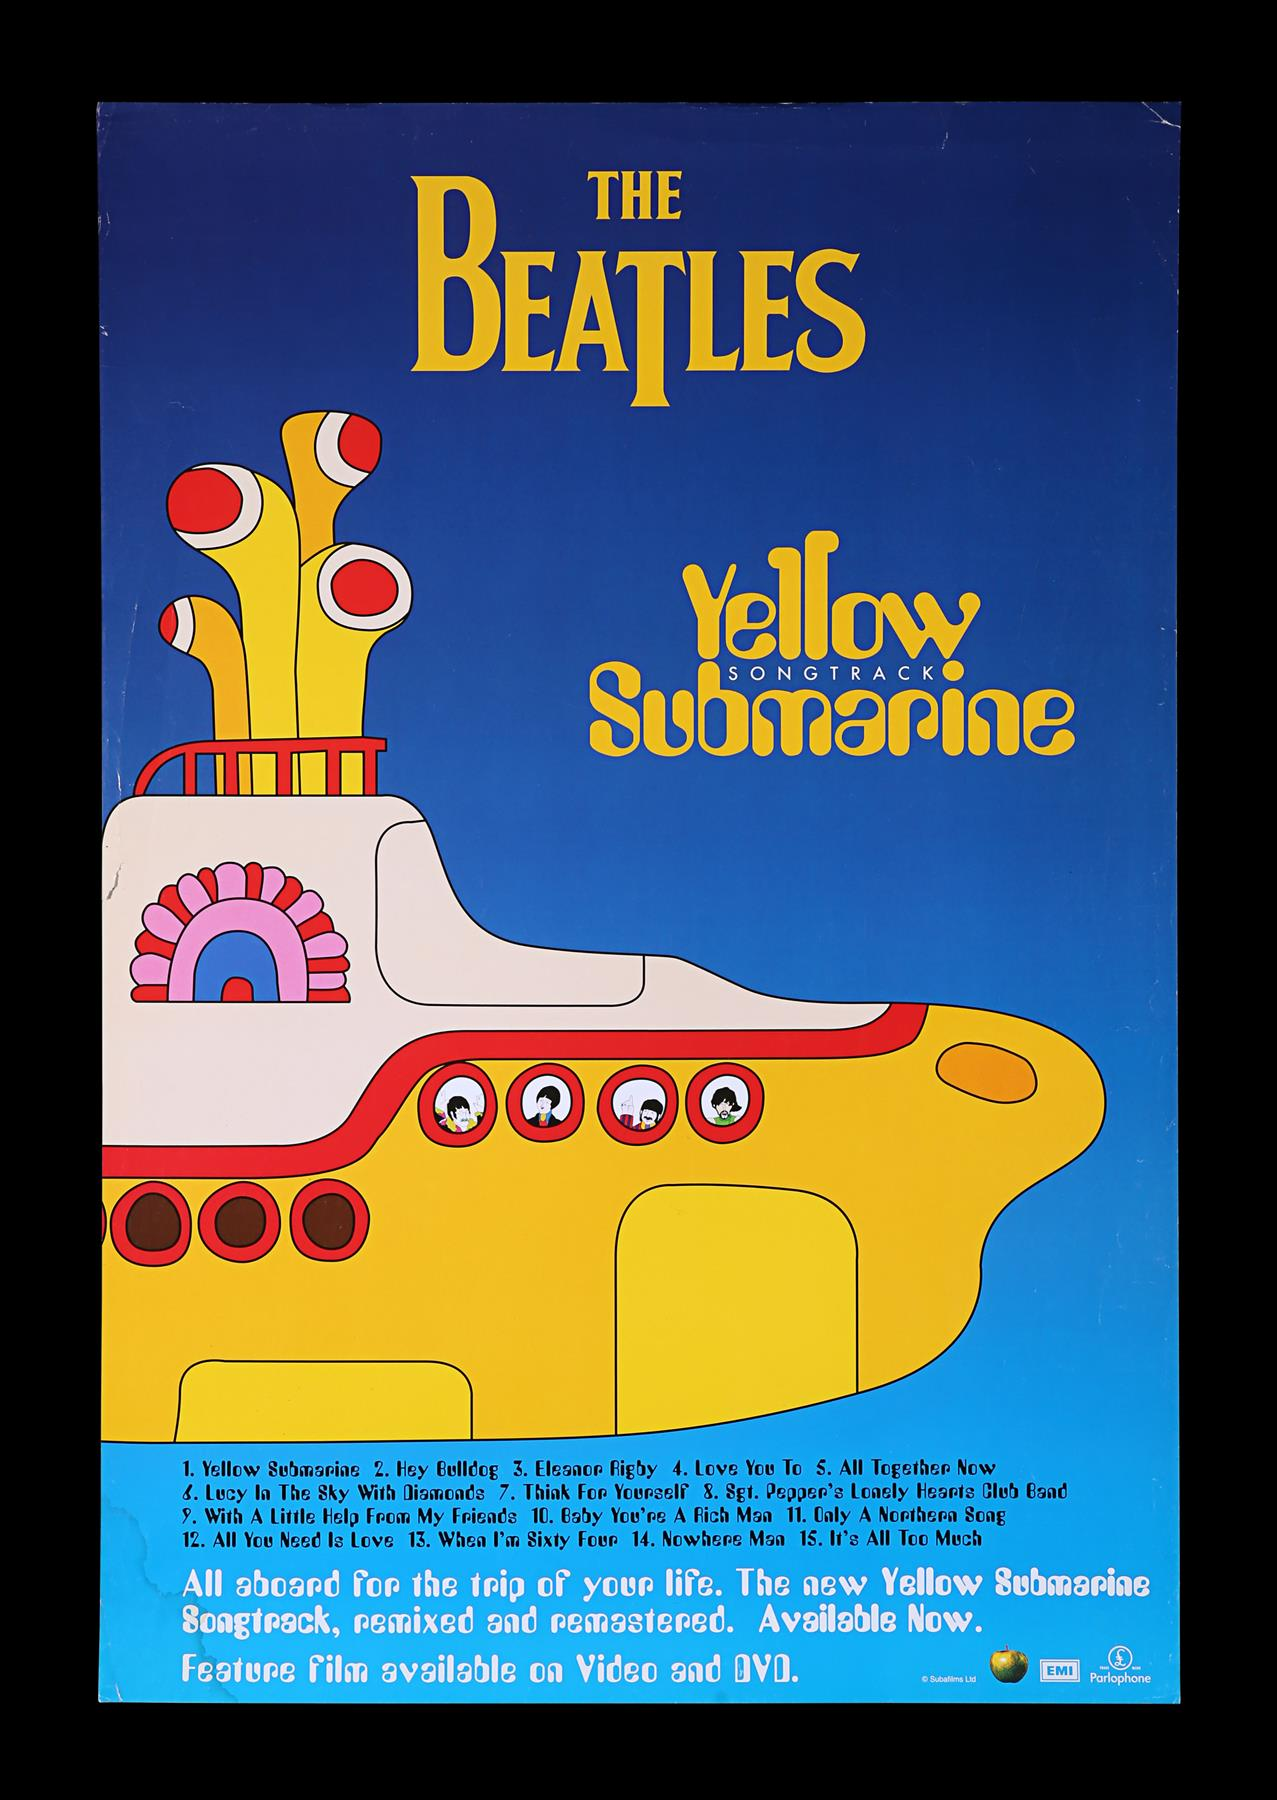 YELLOW SUBMARINE (1968) - Promotional and Marketing Items, 1999 - Image 2 of 9